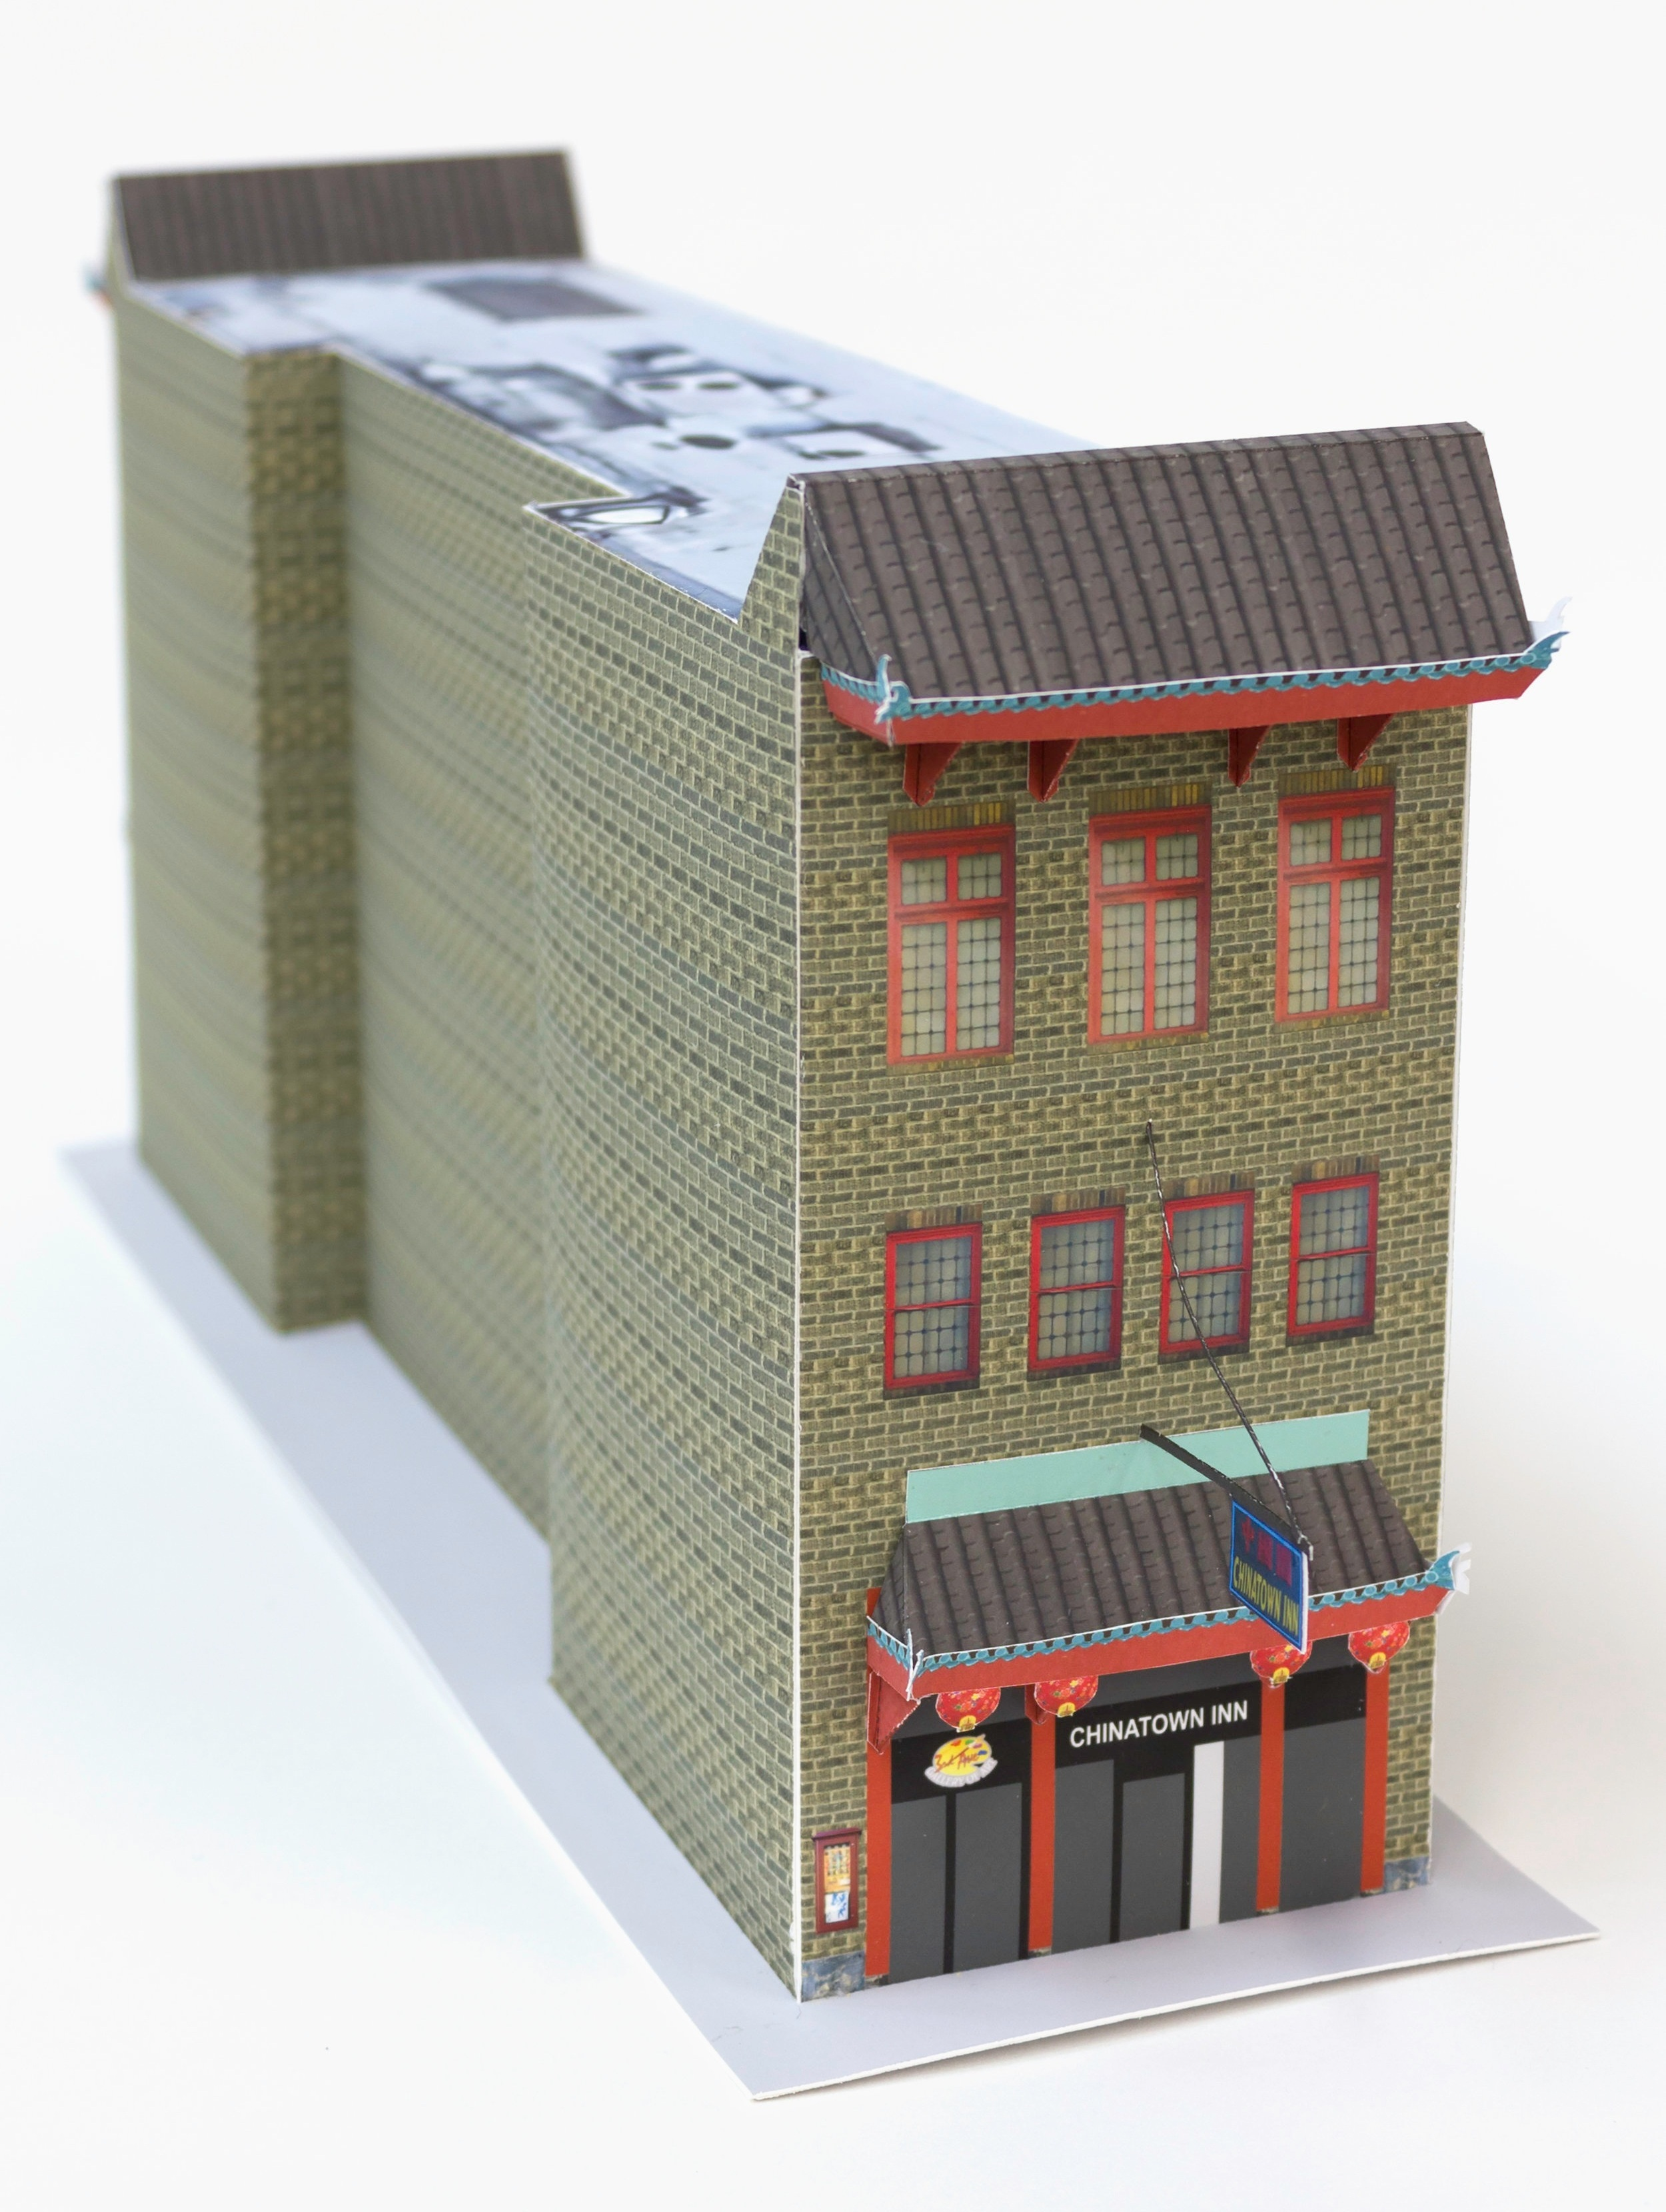 Pittsburgh's Chinatown, 2018   This is a DIY paper craft model of 520 Third Ave, the only remaining building with a physical trace of this city's historic Chinatown.  Pittsburgh's Chinatown formed in the late 1800's, a small part of the large migration of people traveling west during the Gold Rush. At its height in the 1920s, some 500 residents and 25 businesses called Second and Third Avenues between Ross and Grant Street their home. Chinatown's decline is due in part because the construction of the boulevard of the Allies that bisected the neighborhood.   Download and build your own   here.